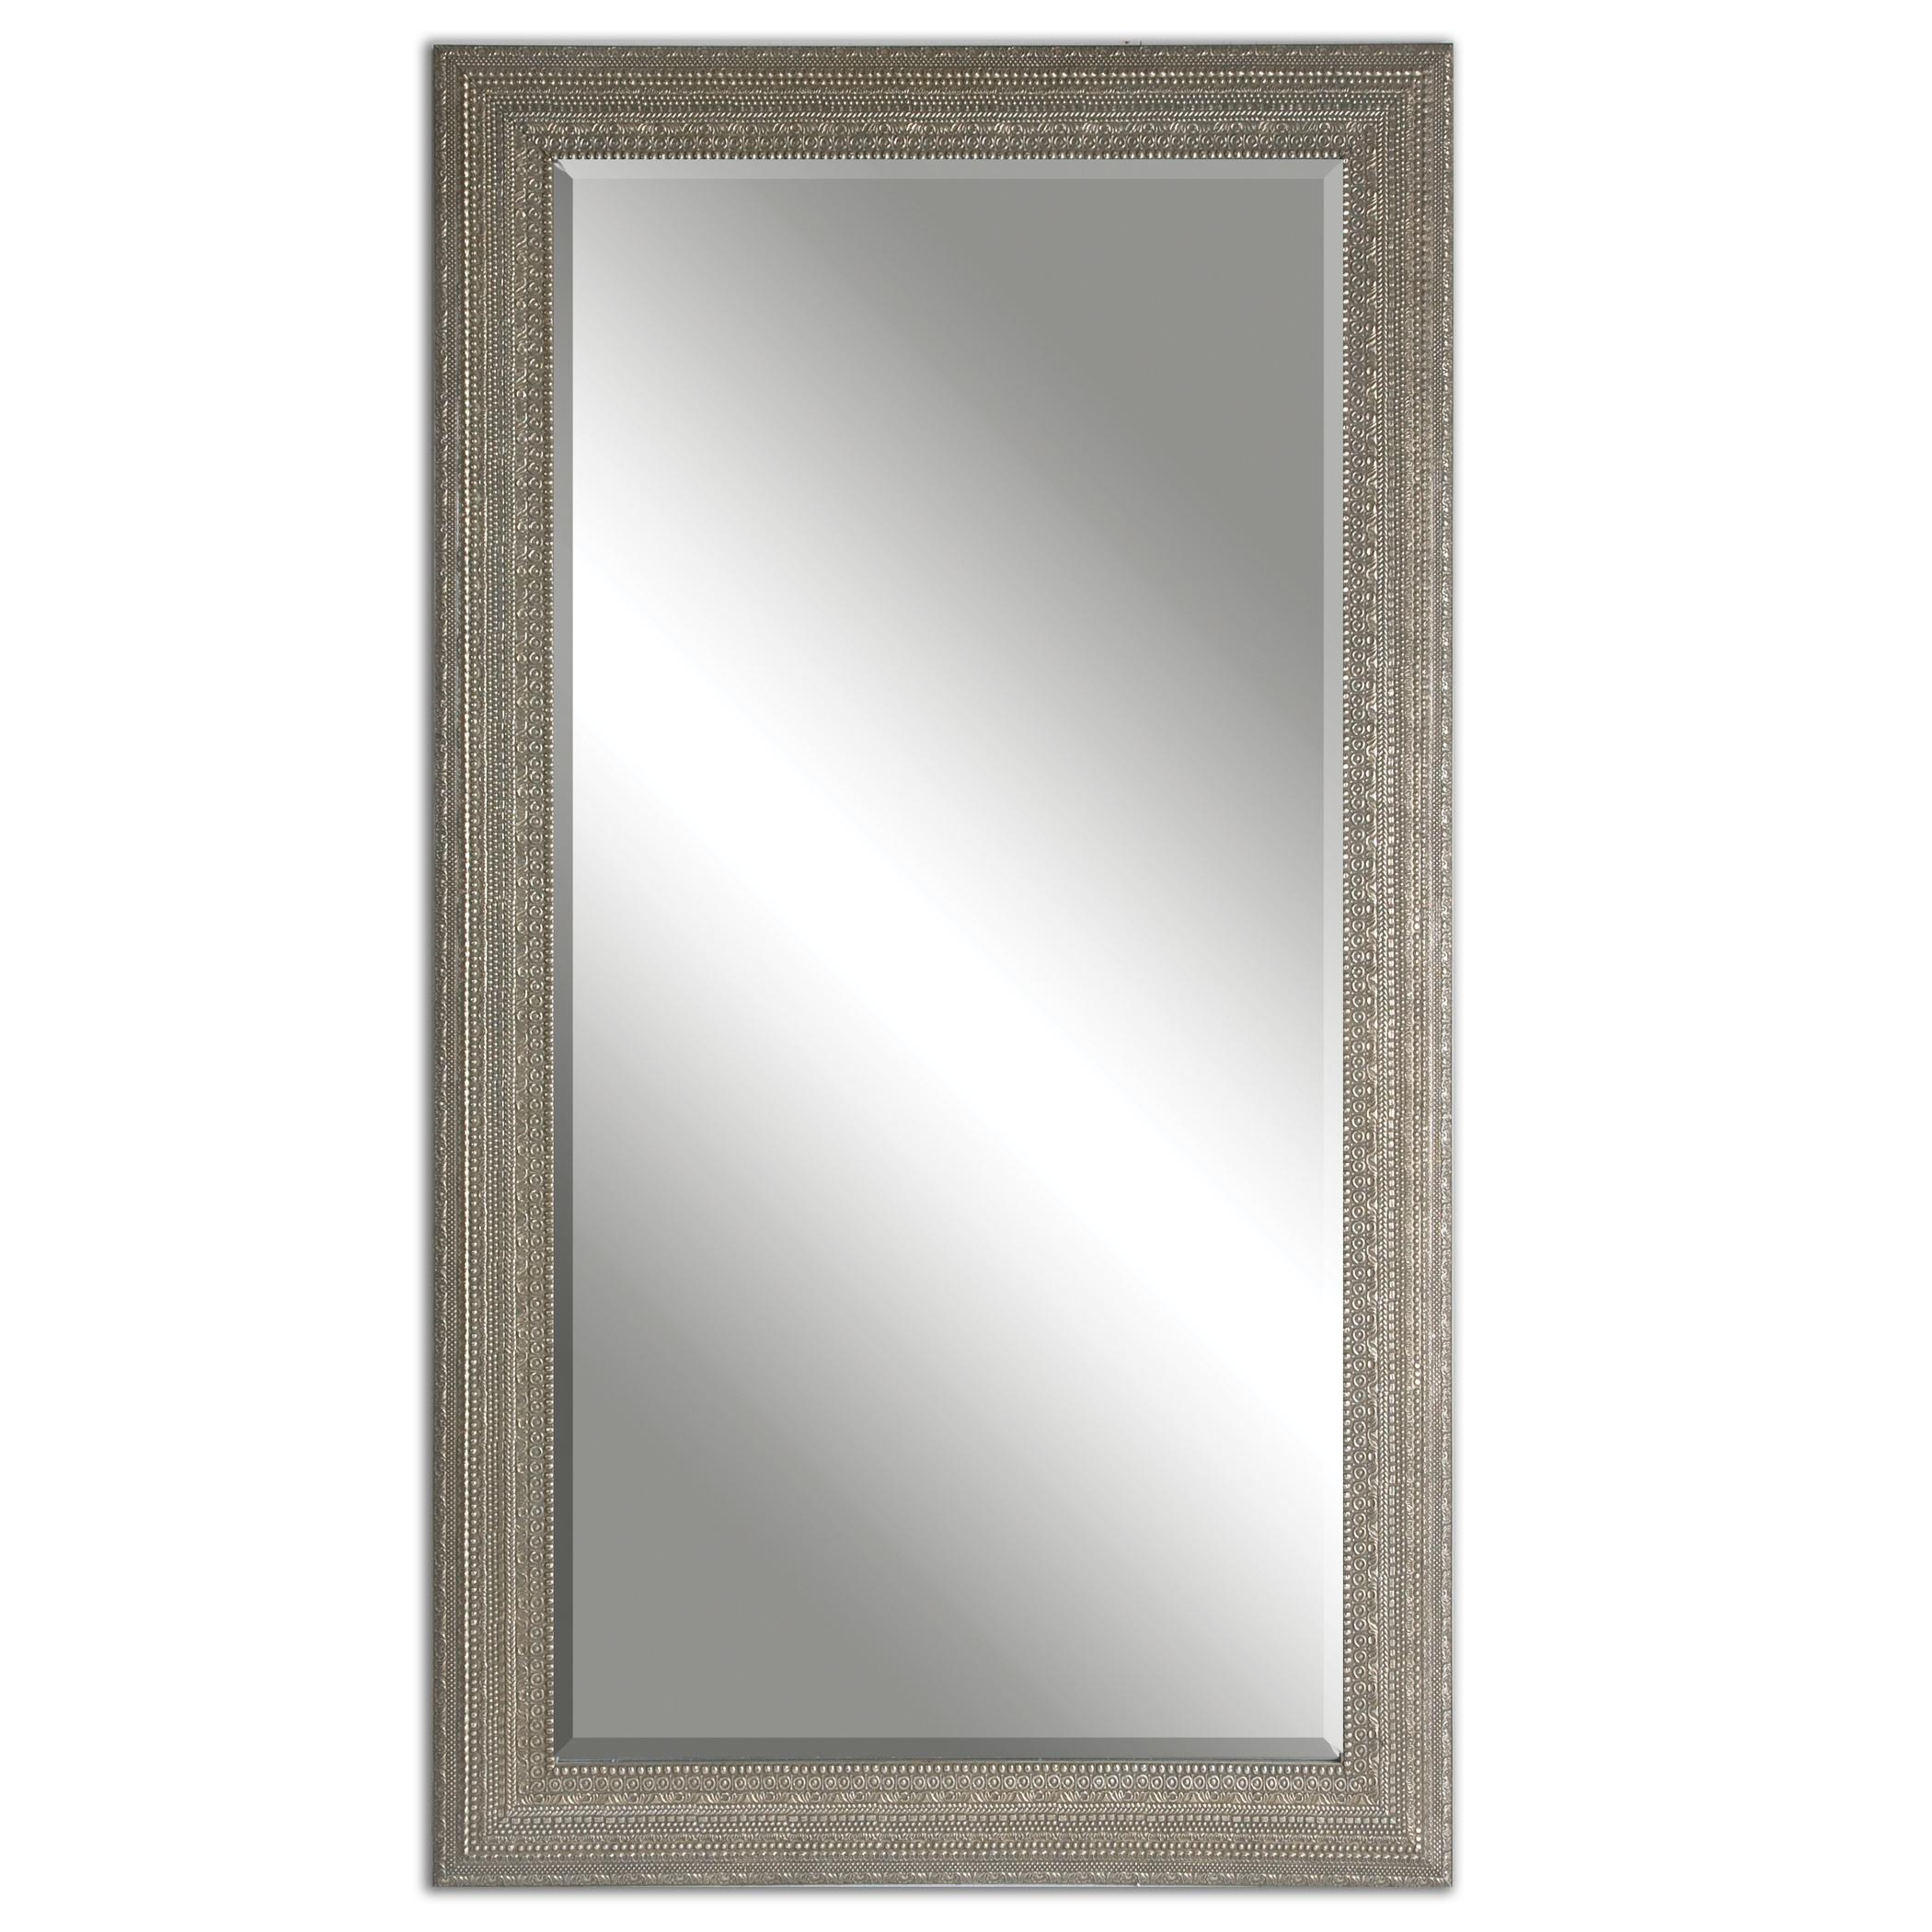 Uttermost Mirrors Malika Antique Silver Mirror - Item Number: 14603